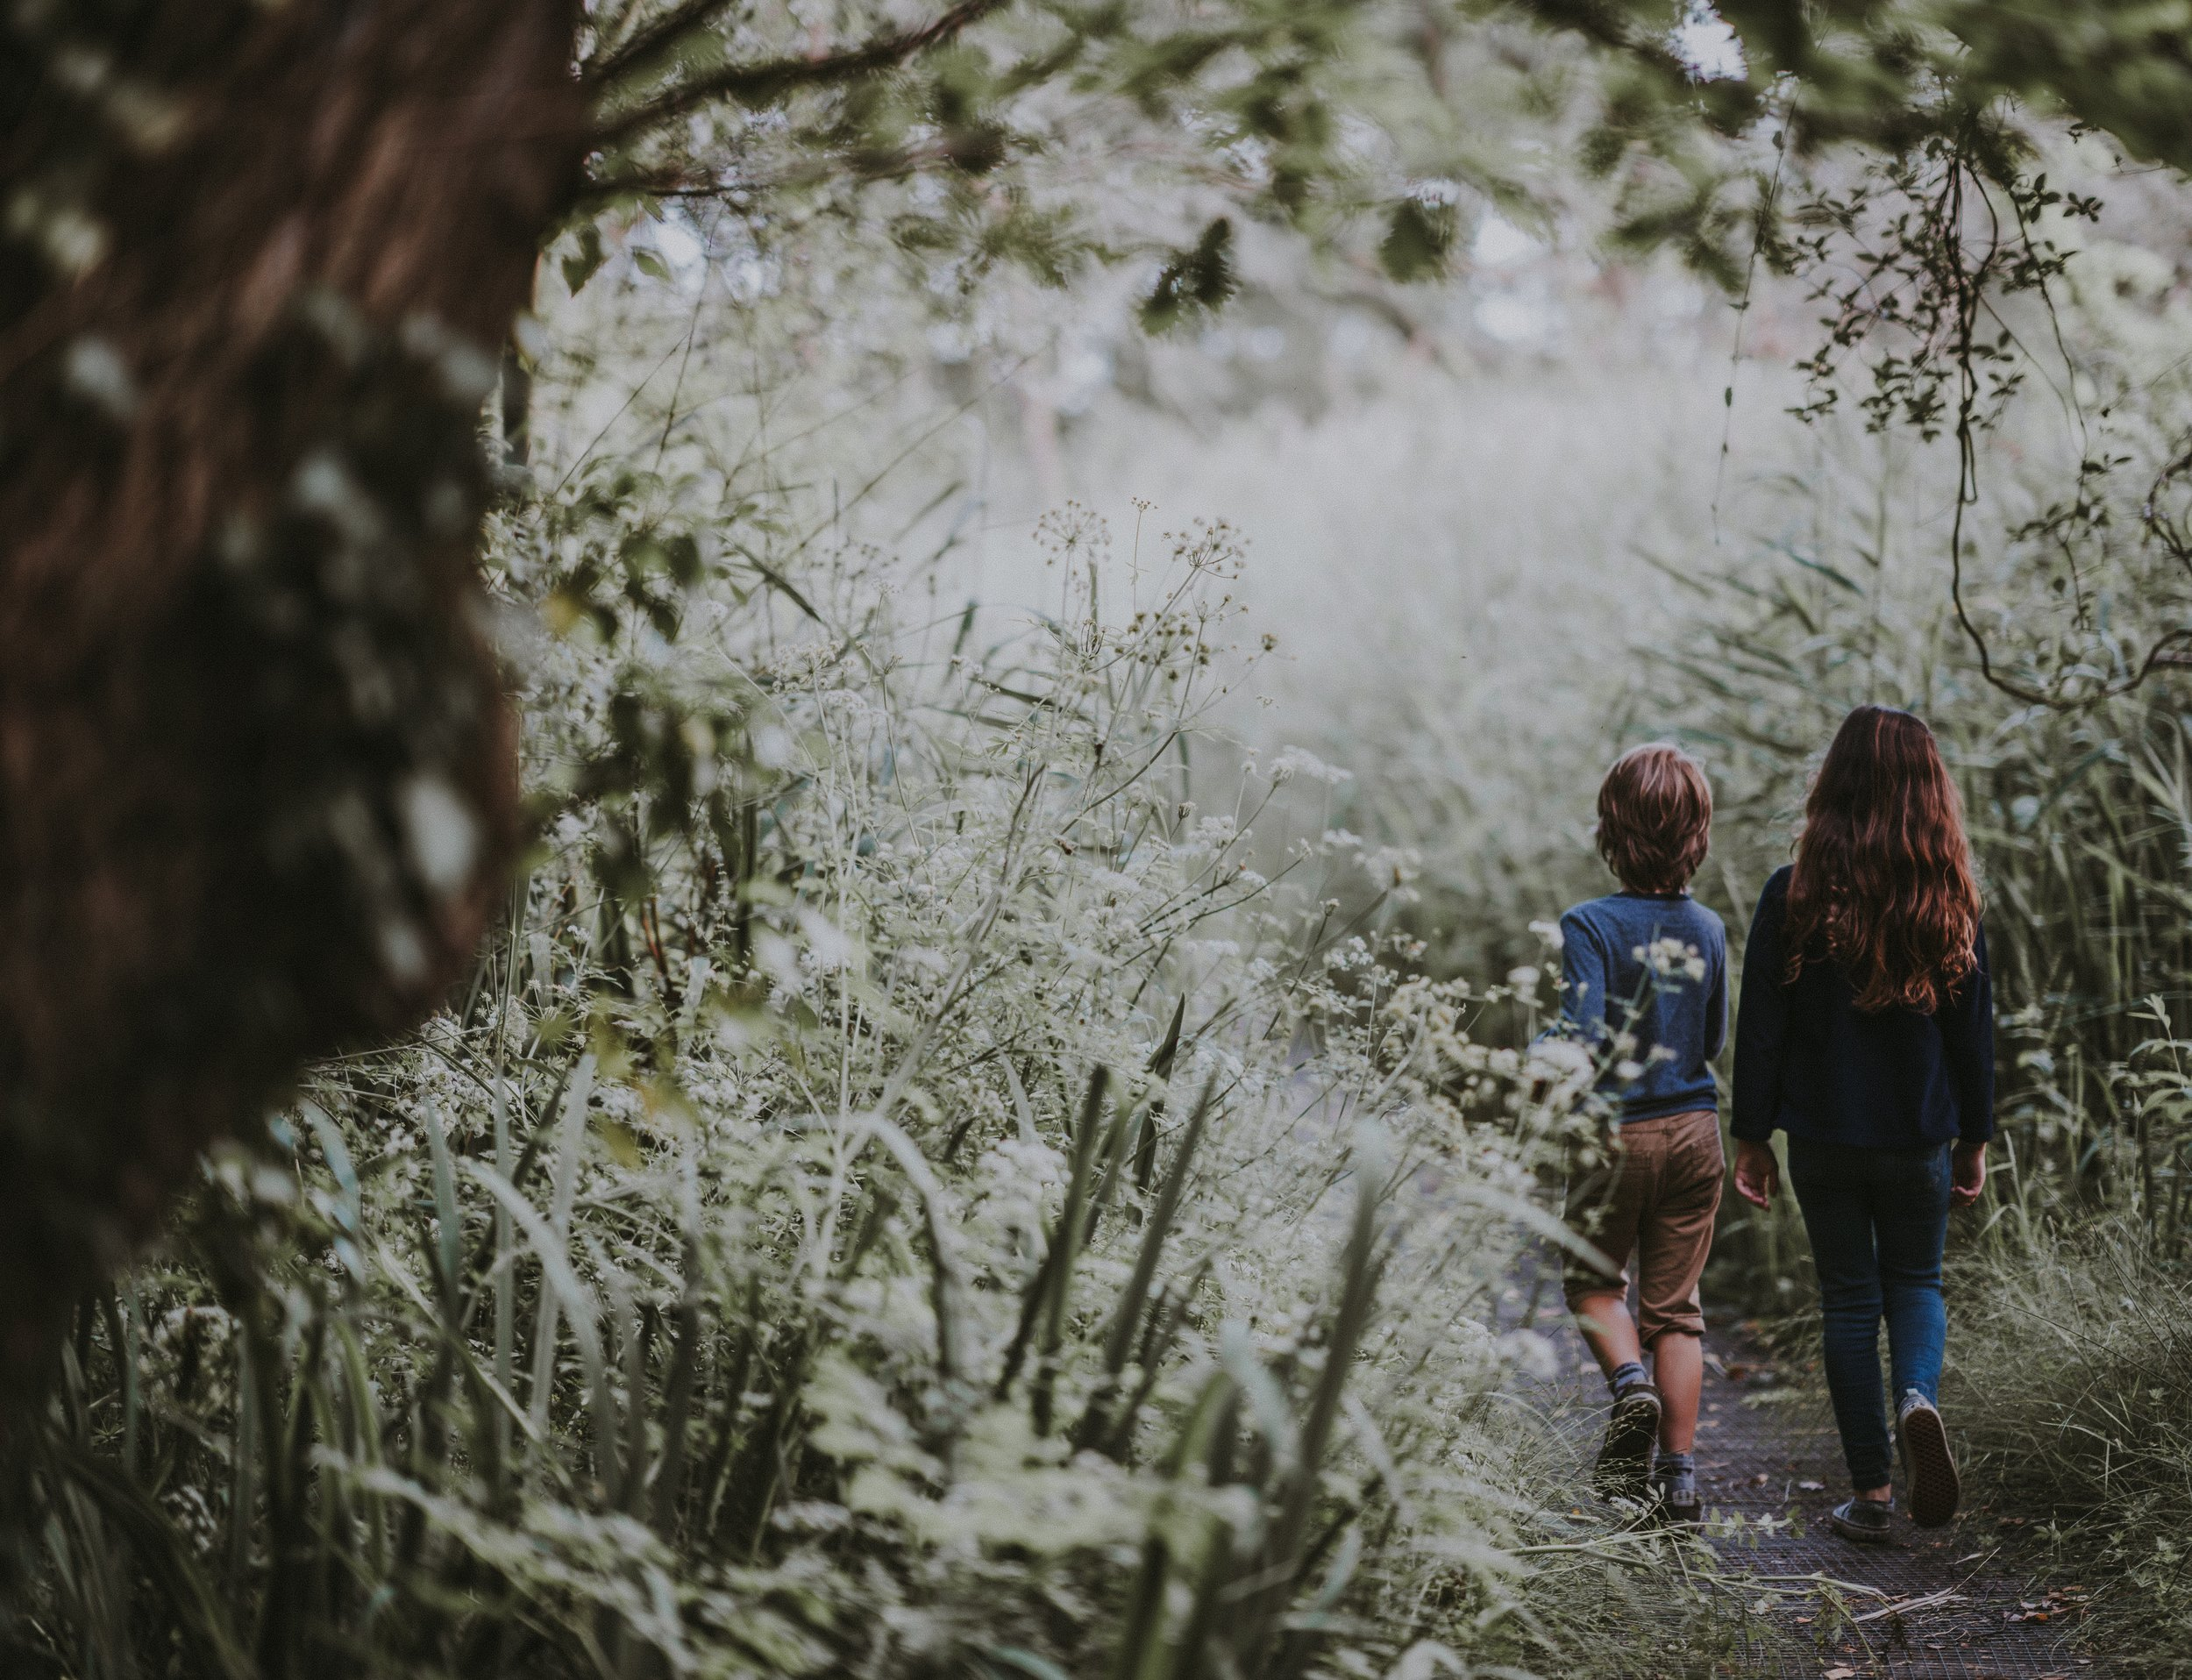 """In the last few decades that parenting has moved away from treating children like """"tiny adults"""". Read more from Holl & Lane at hollandlanemag.com"""